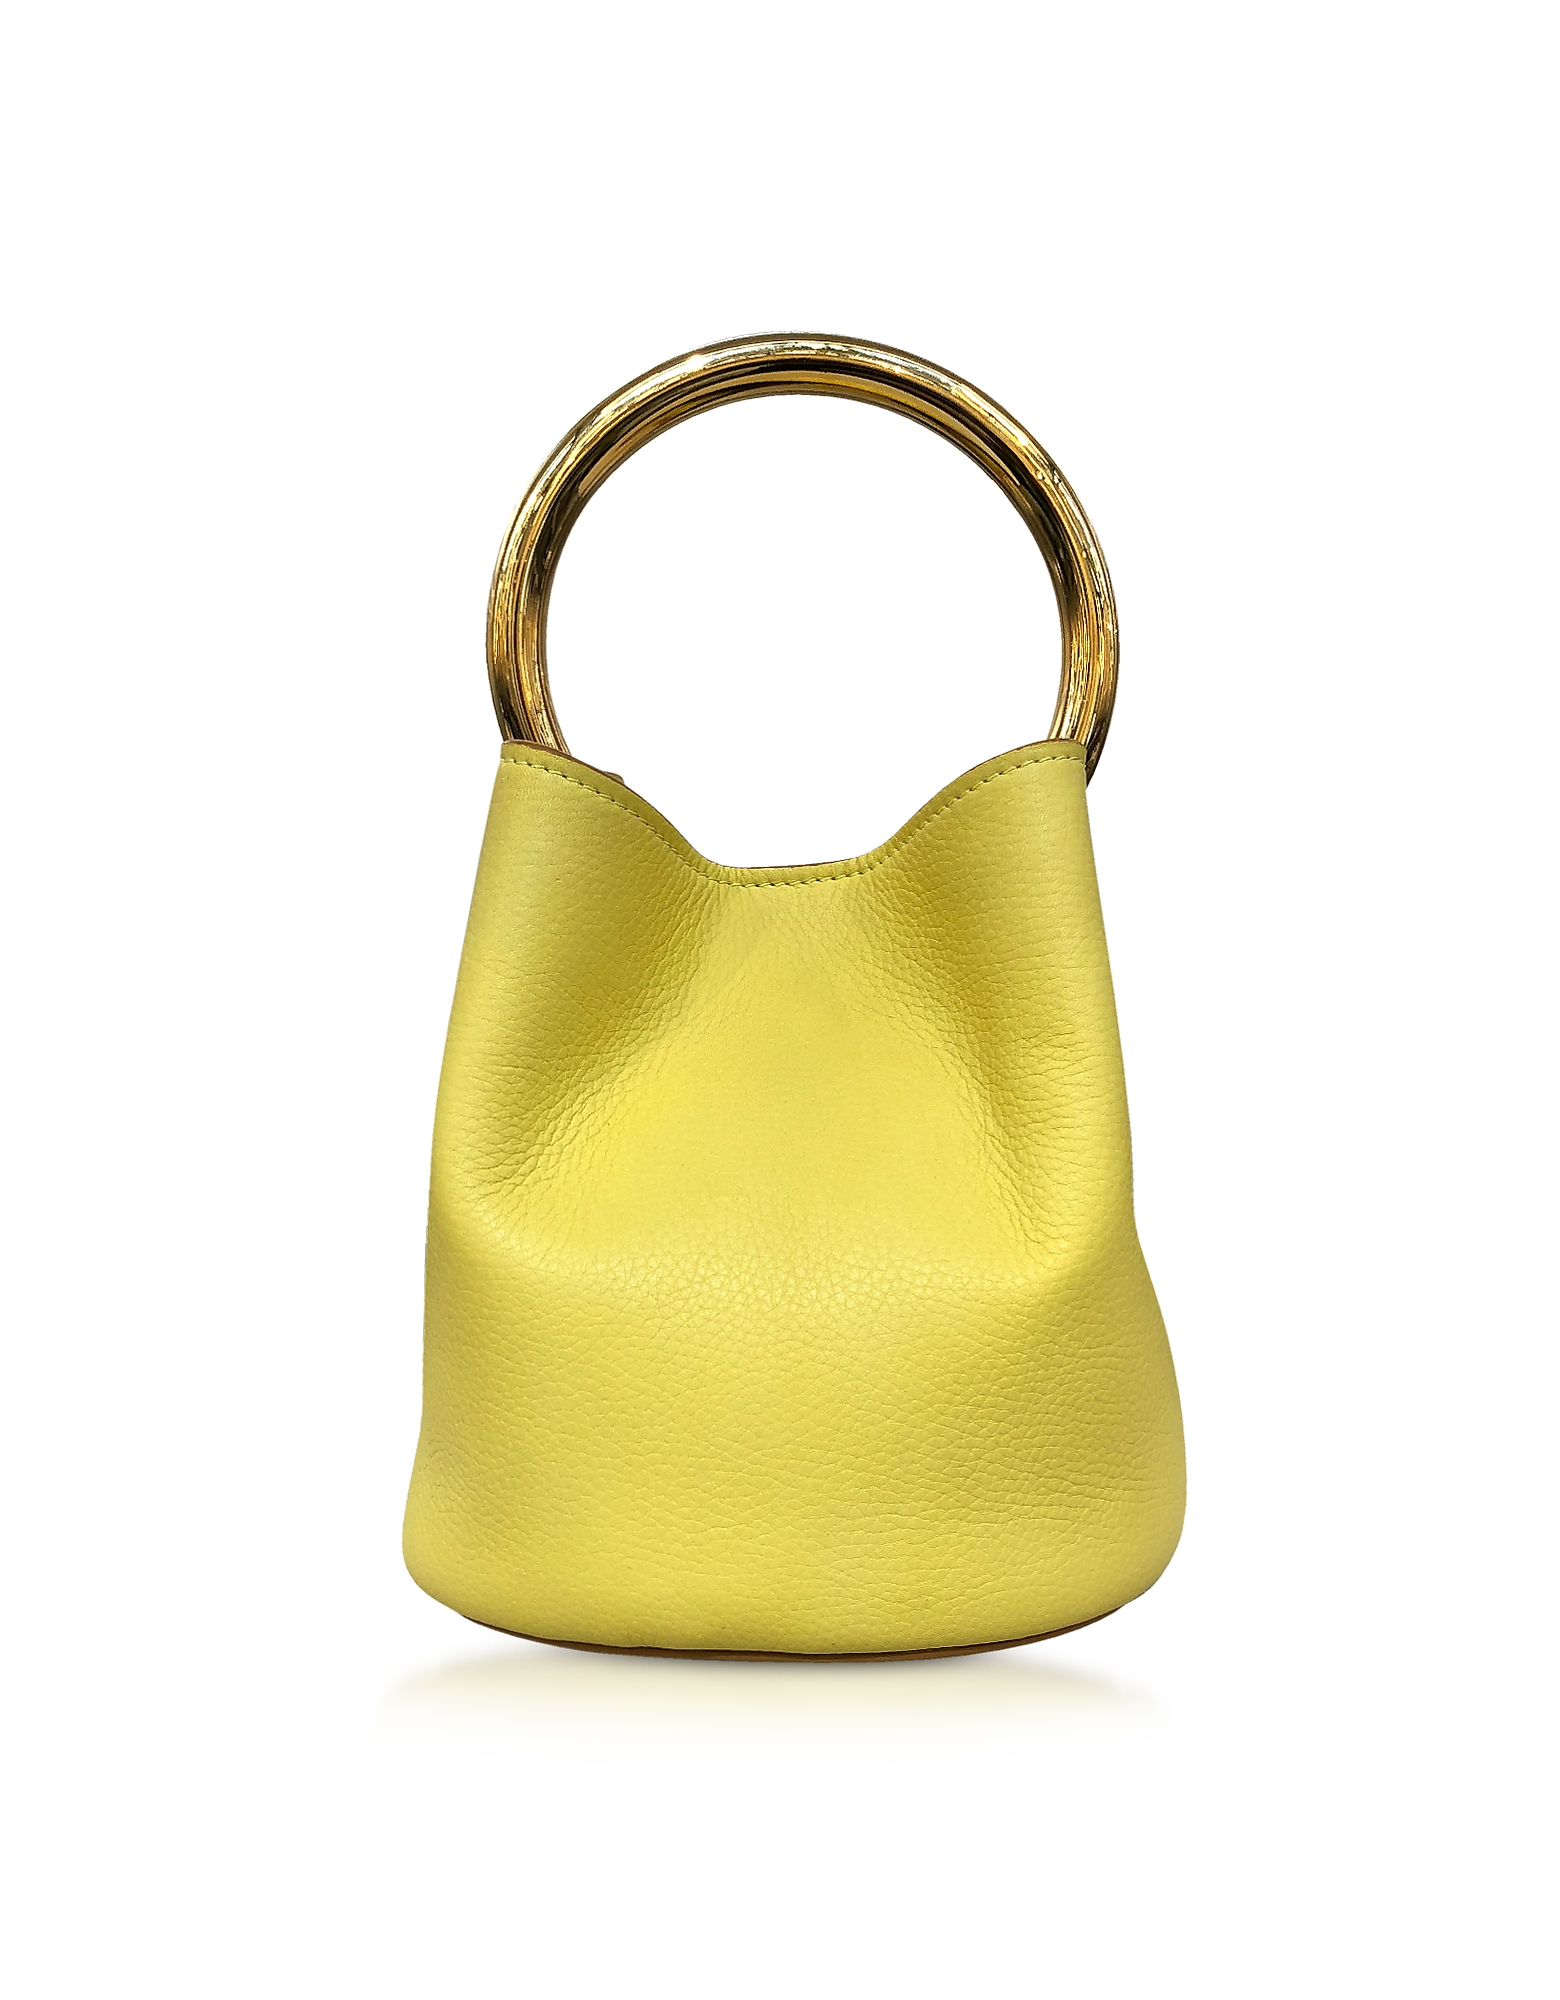 Image of Marni Designer Handbags, Citrus Leather Pannier Bag